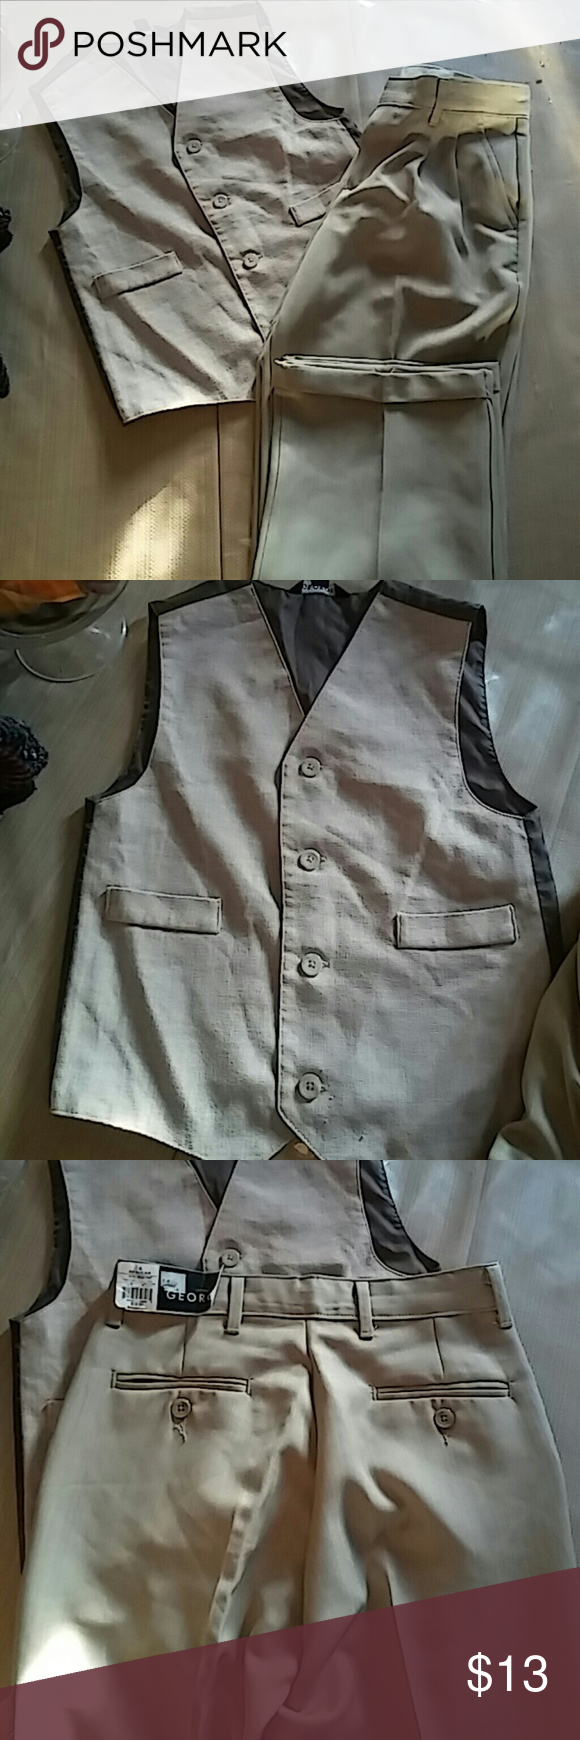 Size8 dressy shirt n pants Pants are really nice to go out for boys new n top vest used once. Other